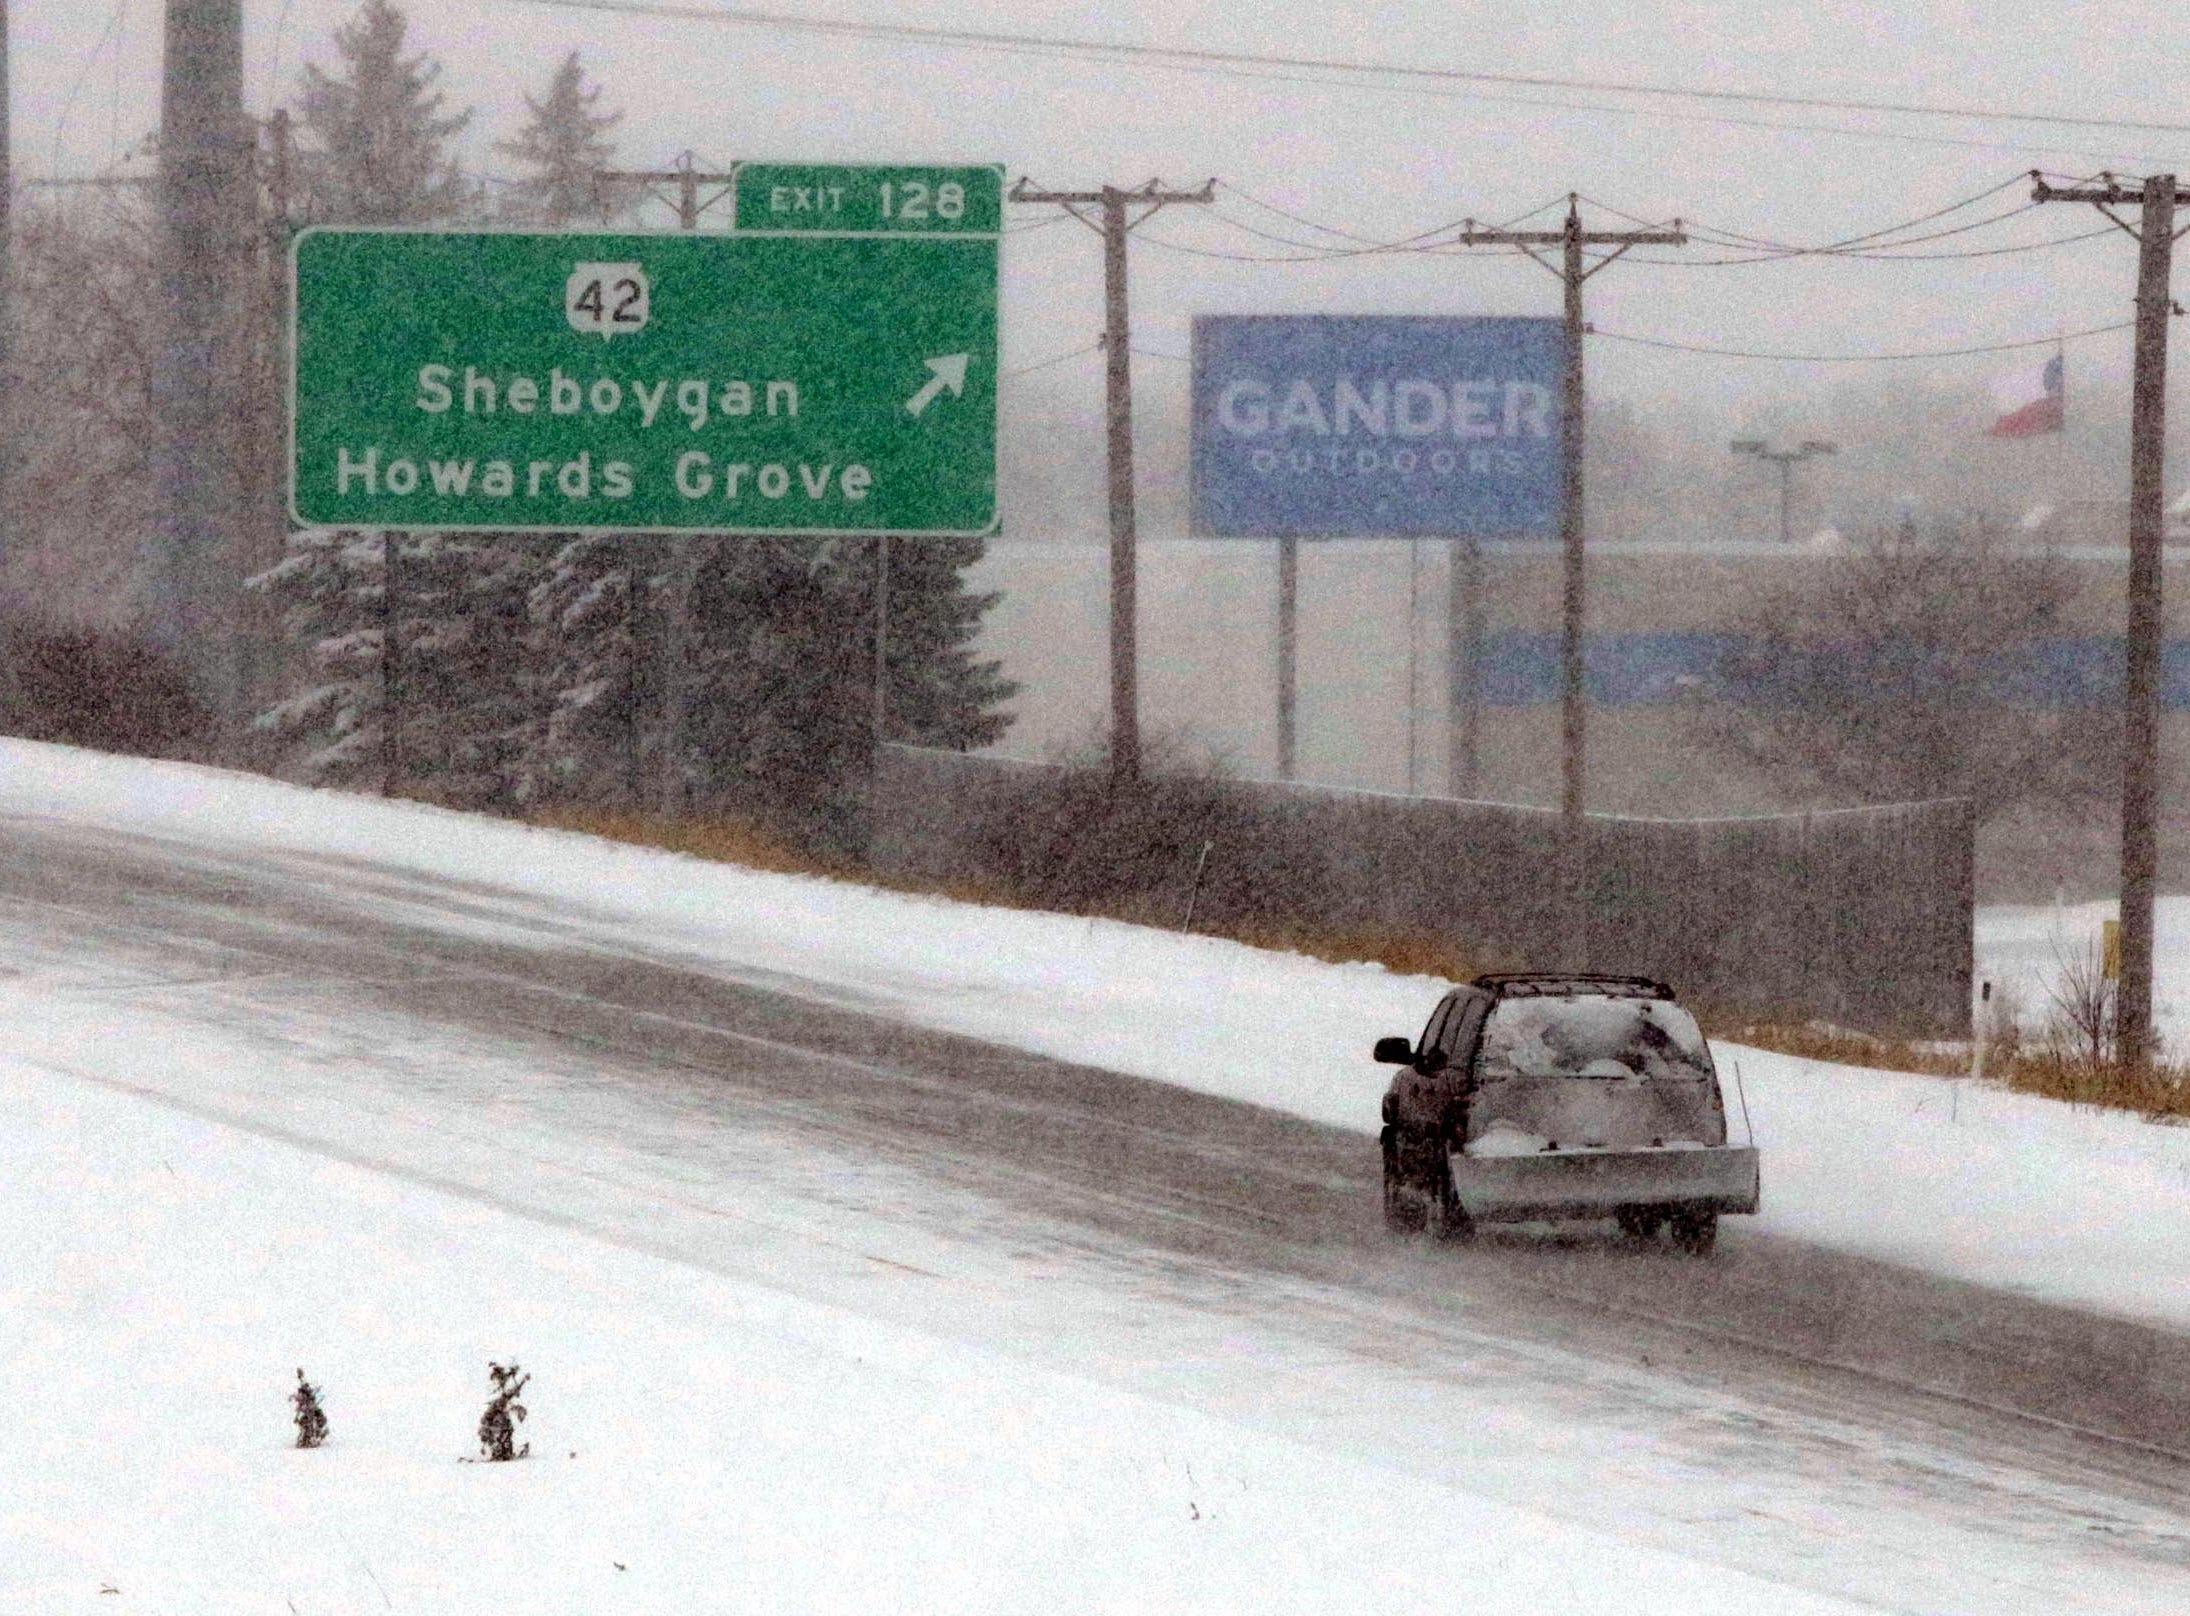 Traffic goes northbound on Interstate 43, south of the state Highway 42 exit, Monday, January 28, 2019, in Sheboygan, Wis. According to Sheboygan County Sheriff Cory Roesler, due to the many closures of businesses and schools, incidents have been kept to a minimum.